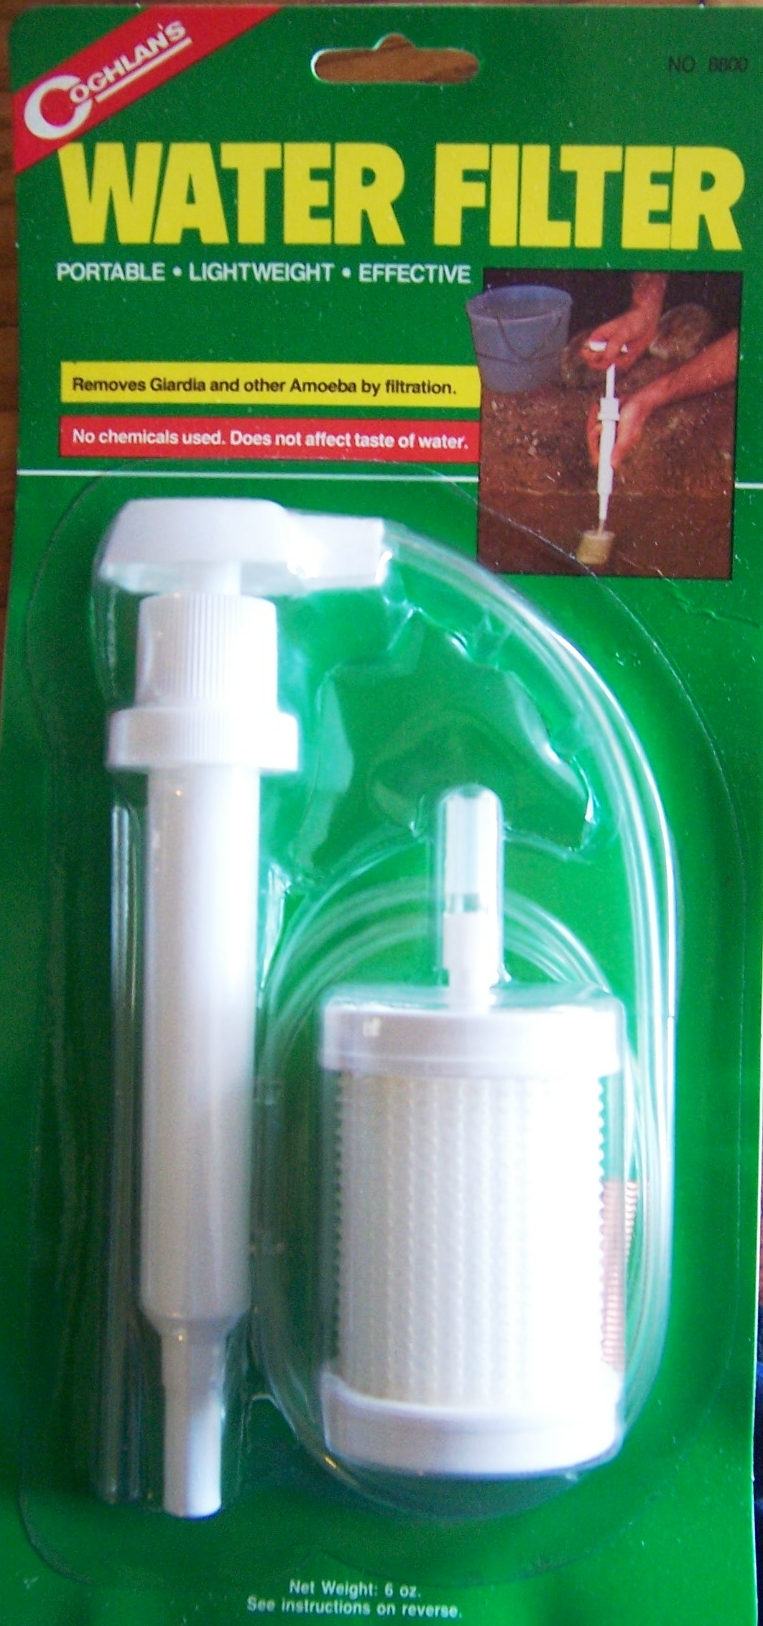 Coghlan's Water Filter